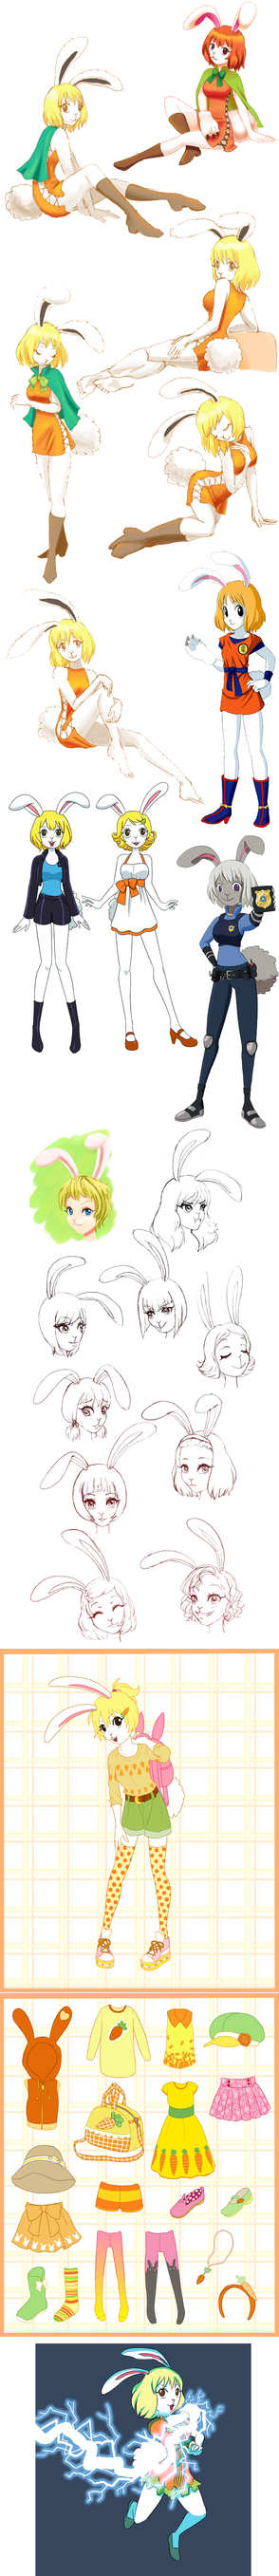 Carrot art dump by Hapuriainen